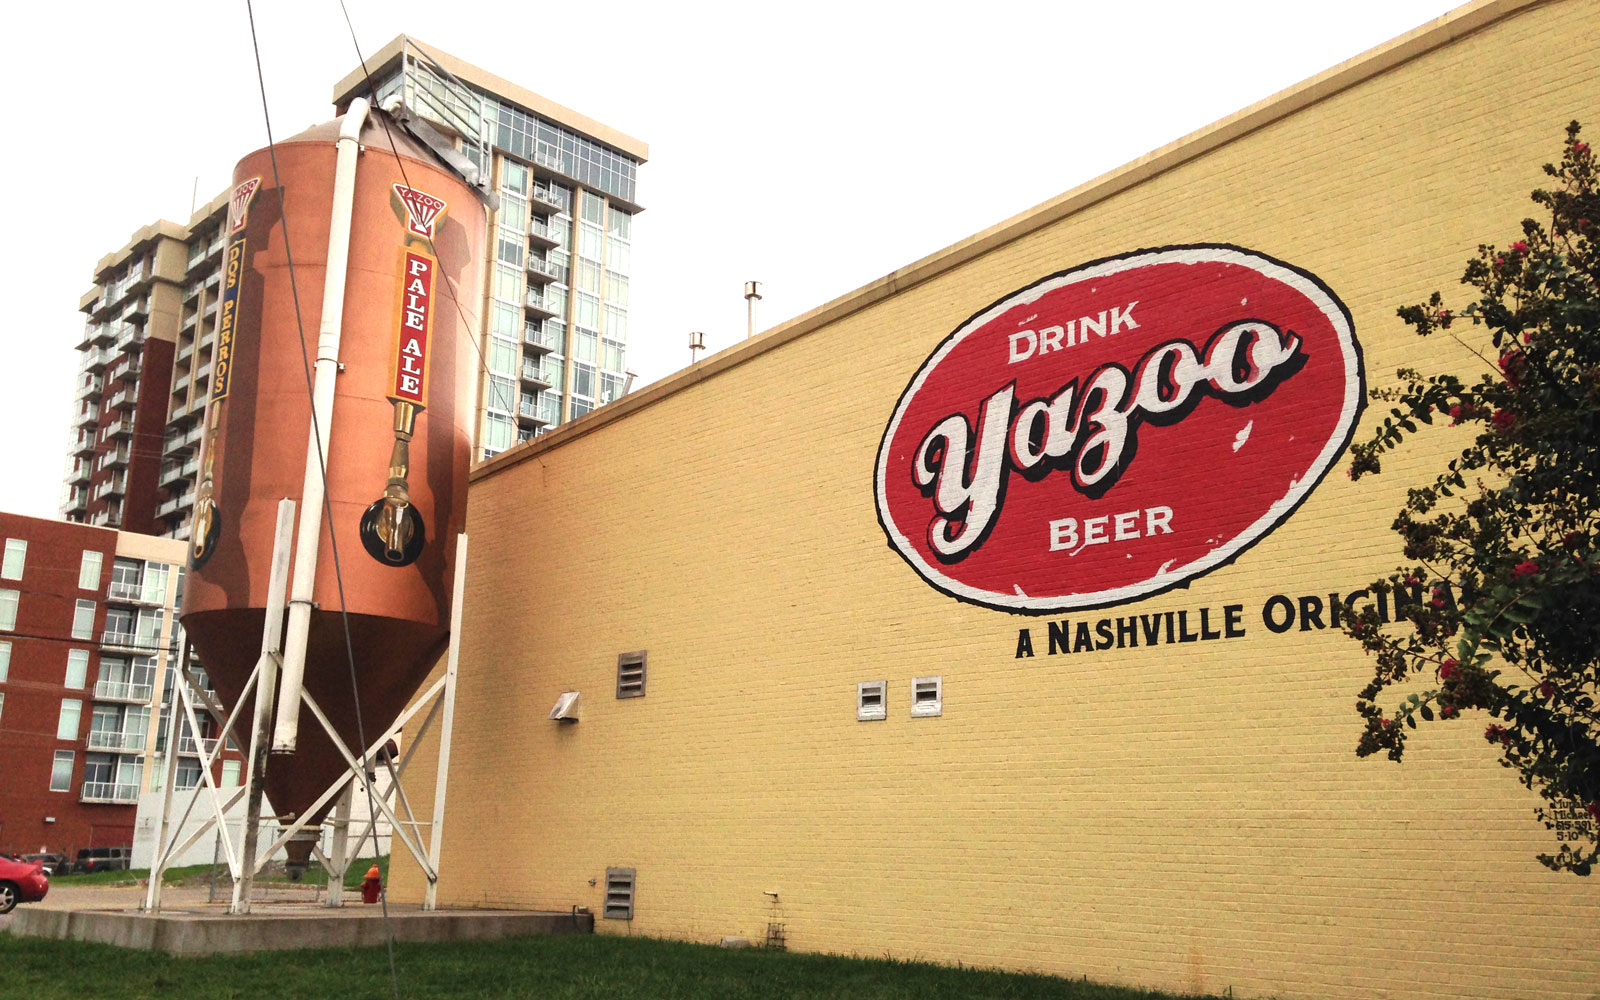 Yazoo Brewing Company in Nashville